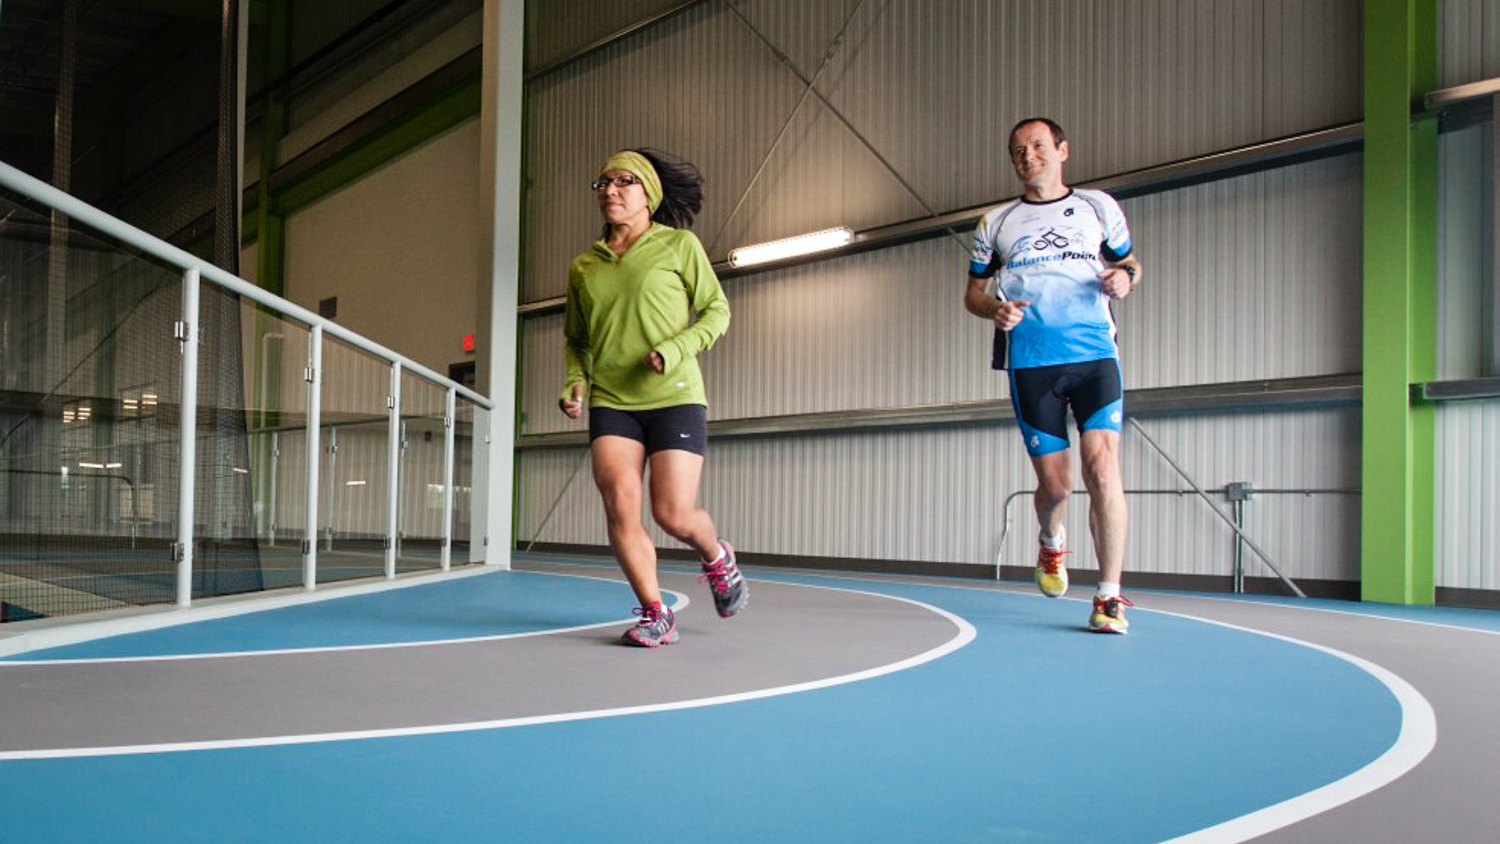 A file photo published by the City of Yellowknife shows people using the Fieldhouse jogging track. (Nobody in the image is accused of any wrongdoing.)